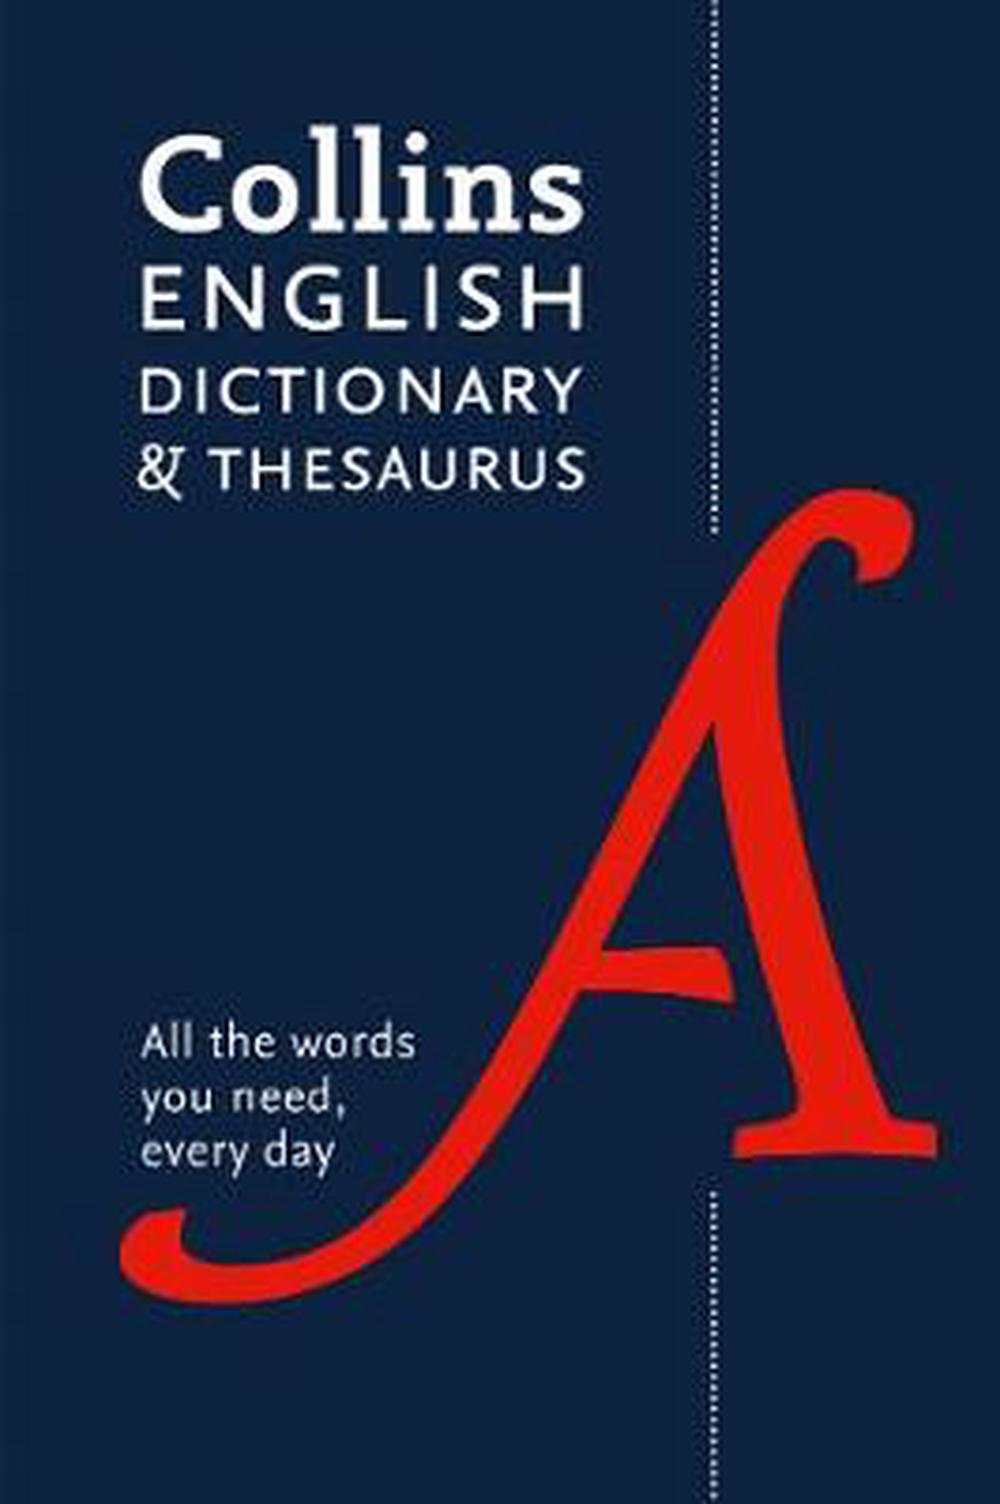 Collins English Dictionary and Thesaurus Paperback edition: All-in-one support for everyday use